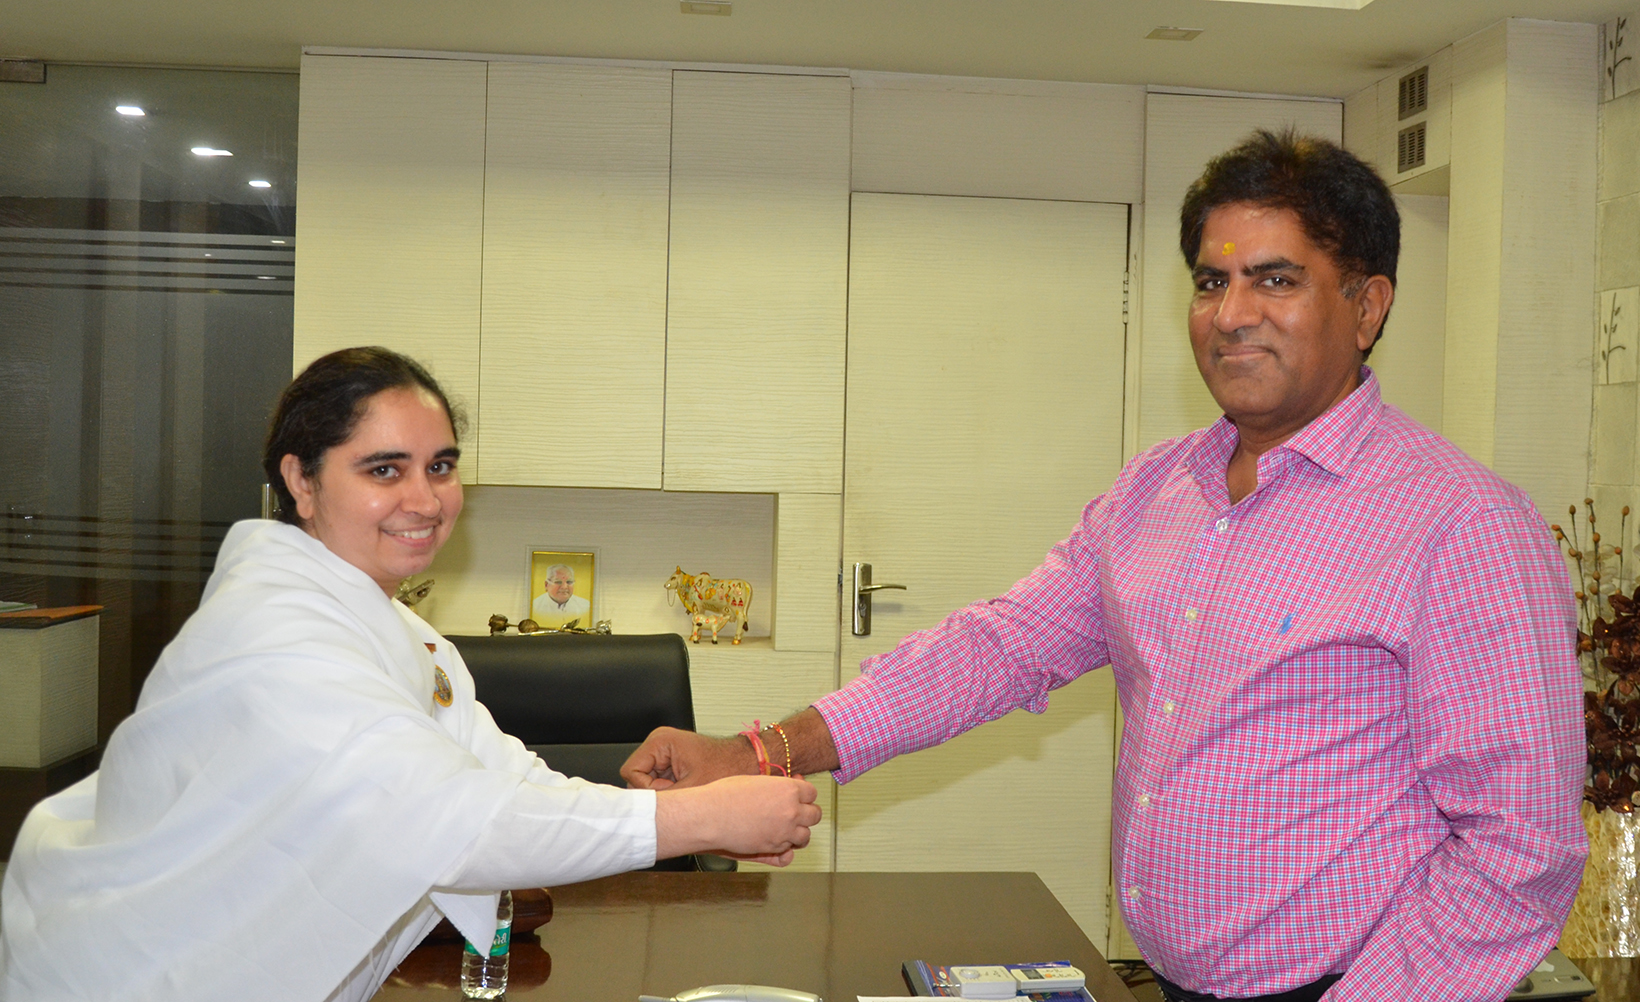 BK Aditi ties Rakhi to Rakesh Gupta- MD and Chairman Sadana Group of Channels